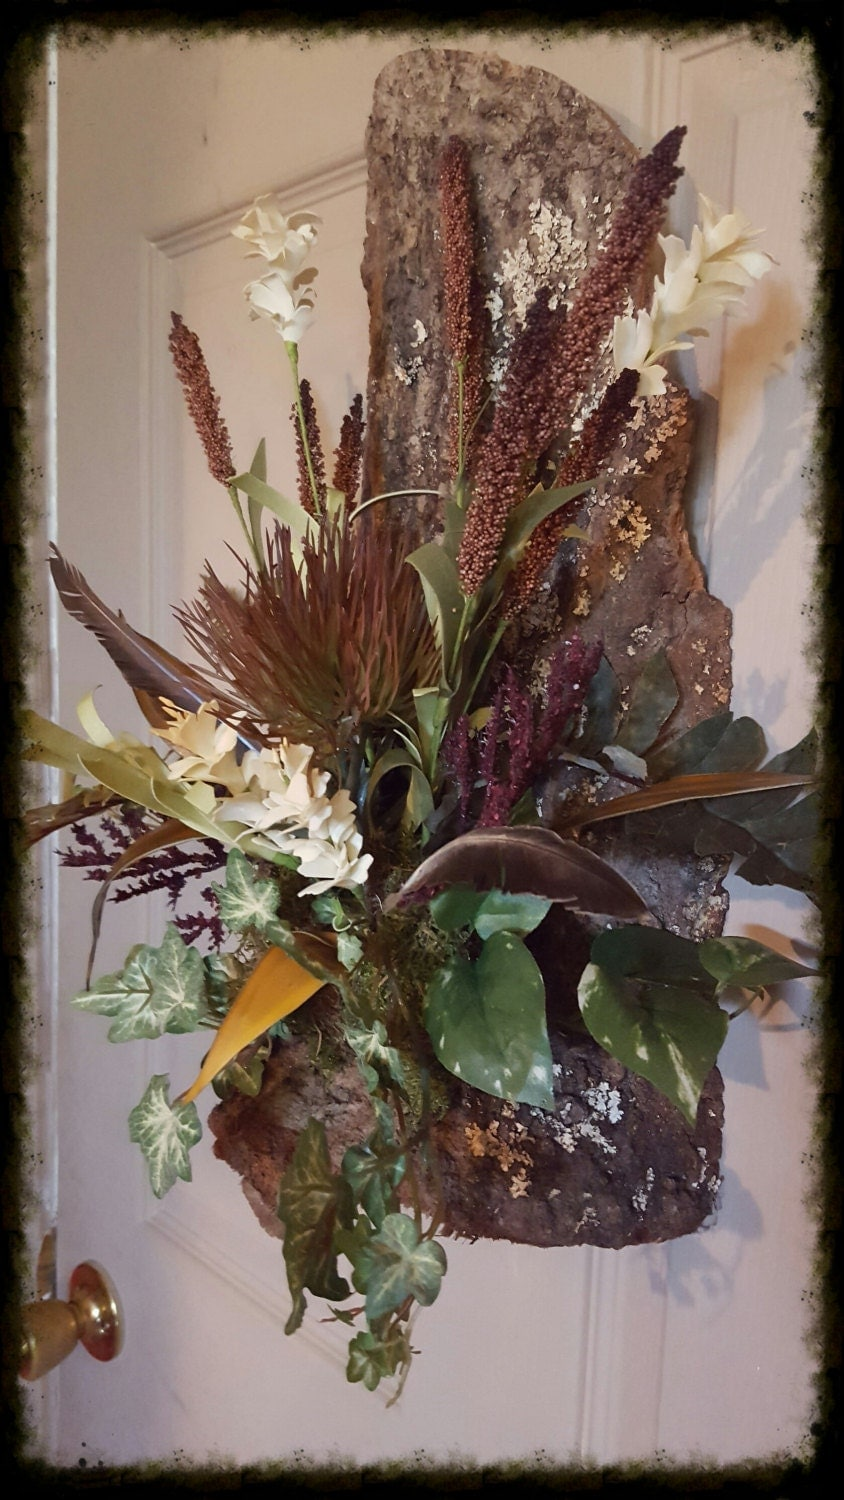 Cow Horn Floral Arrangement Wall Sconce on by TailsEndFlorals on Wall Sconce Floral Arrangements Arrangement id=87408